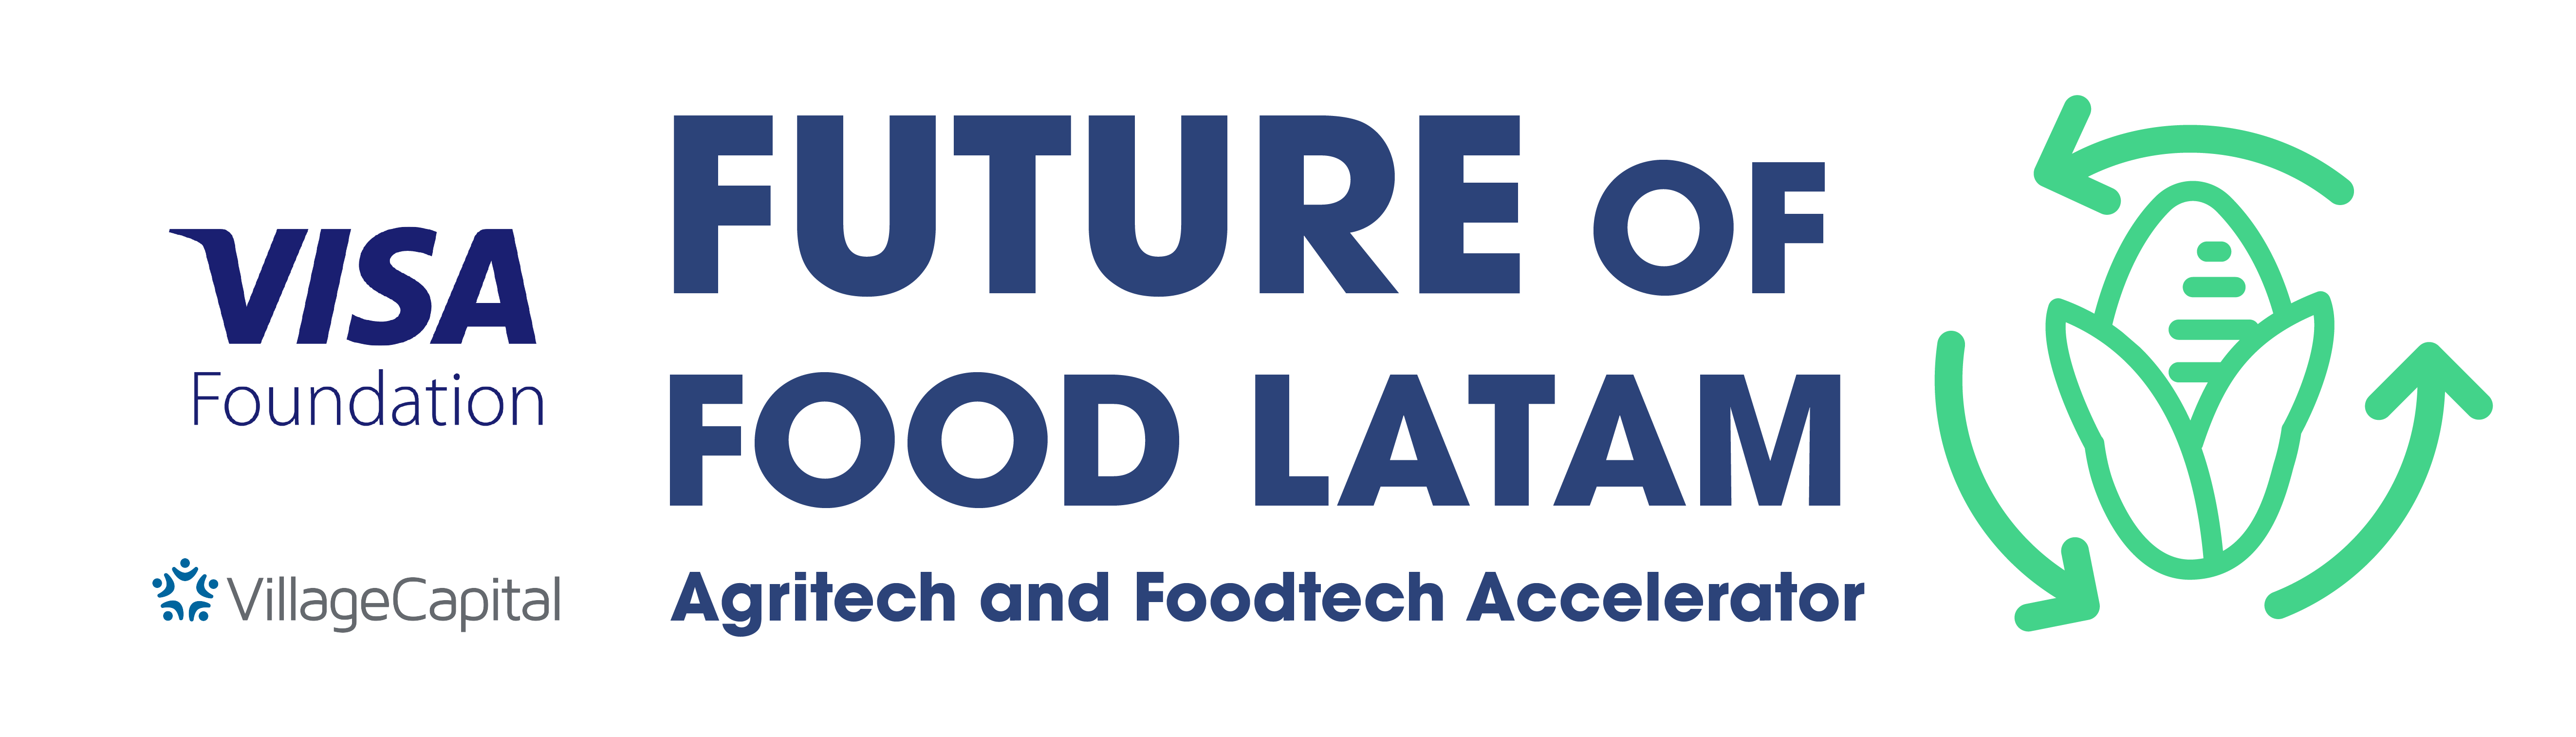 Future of food logo png